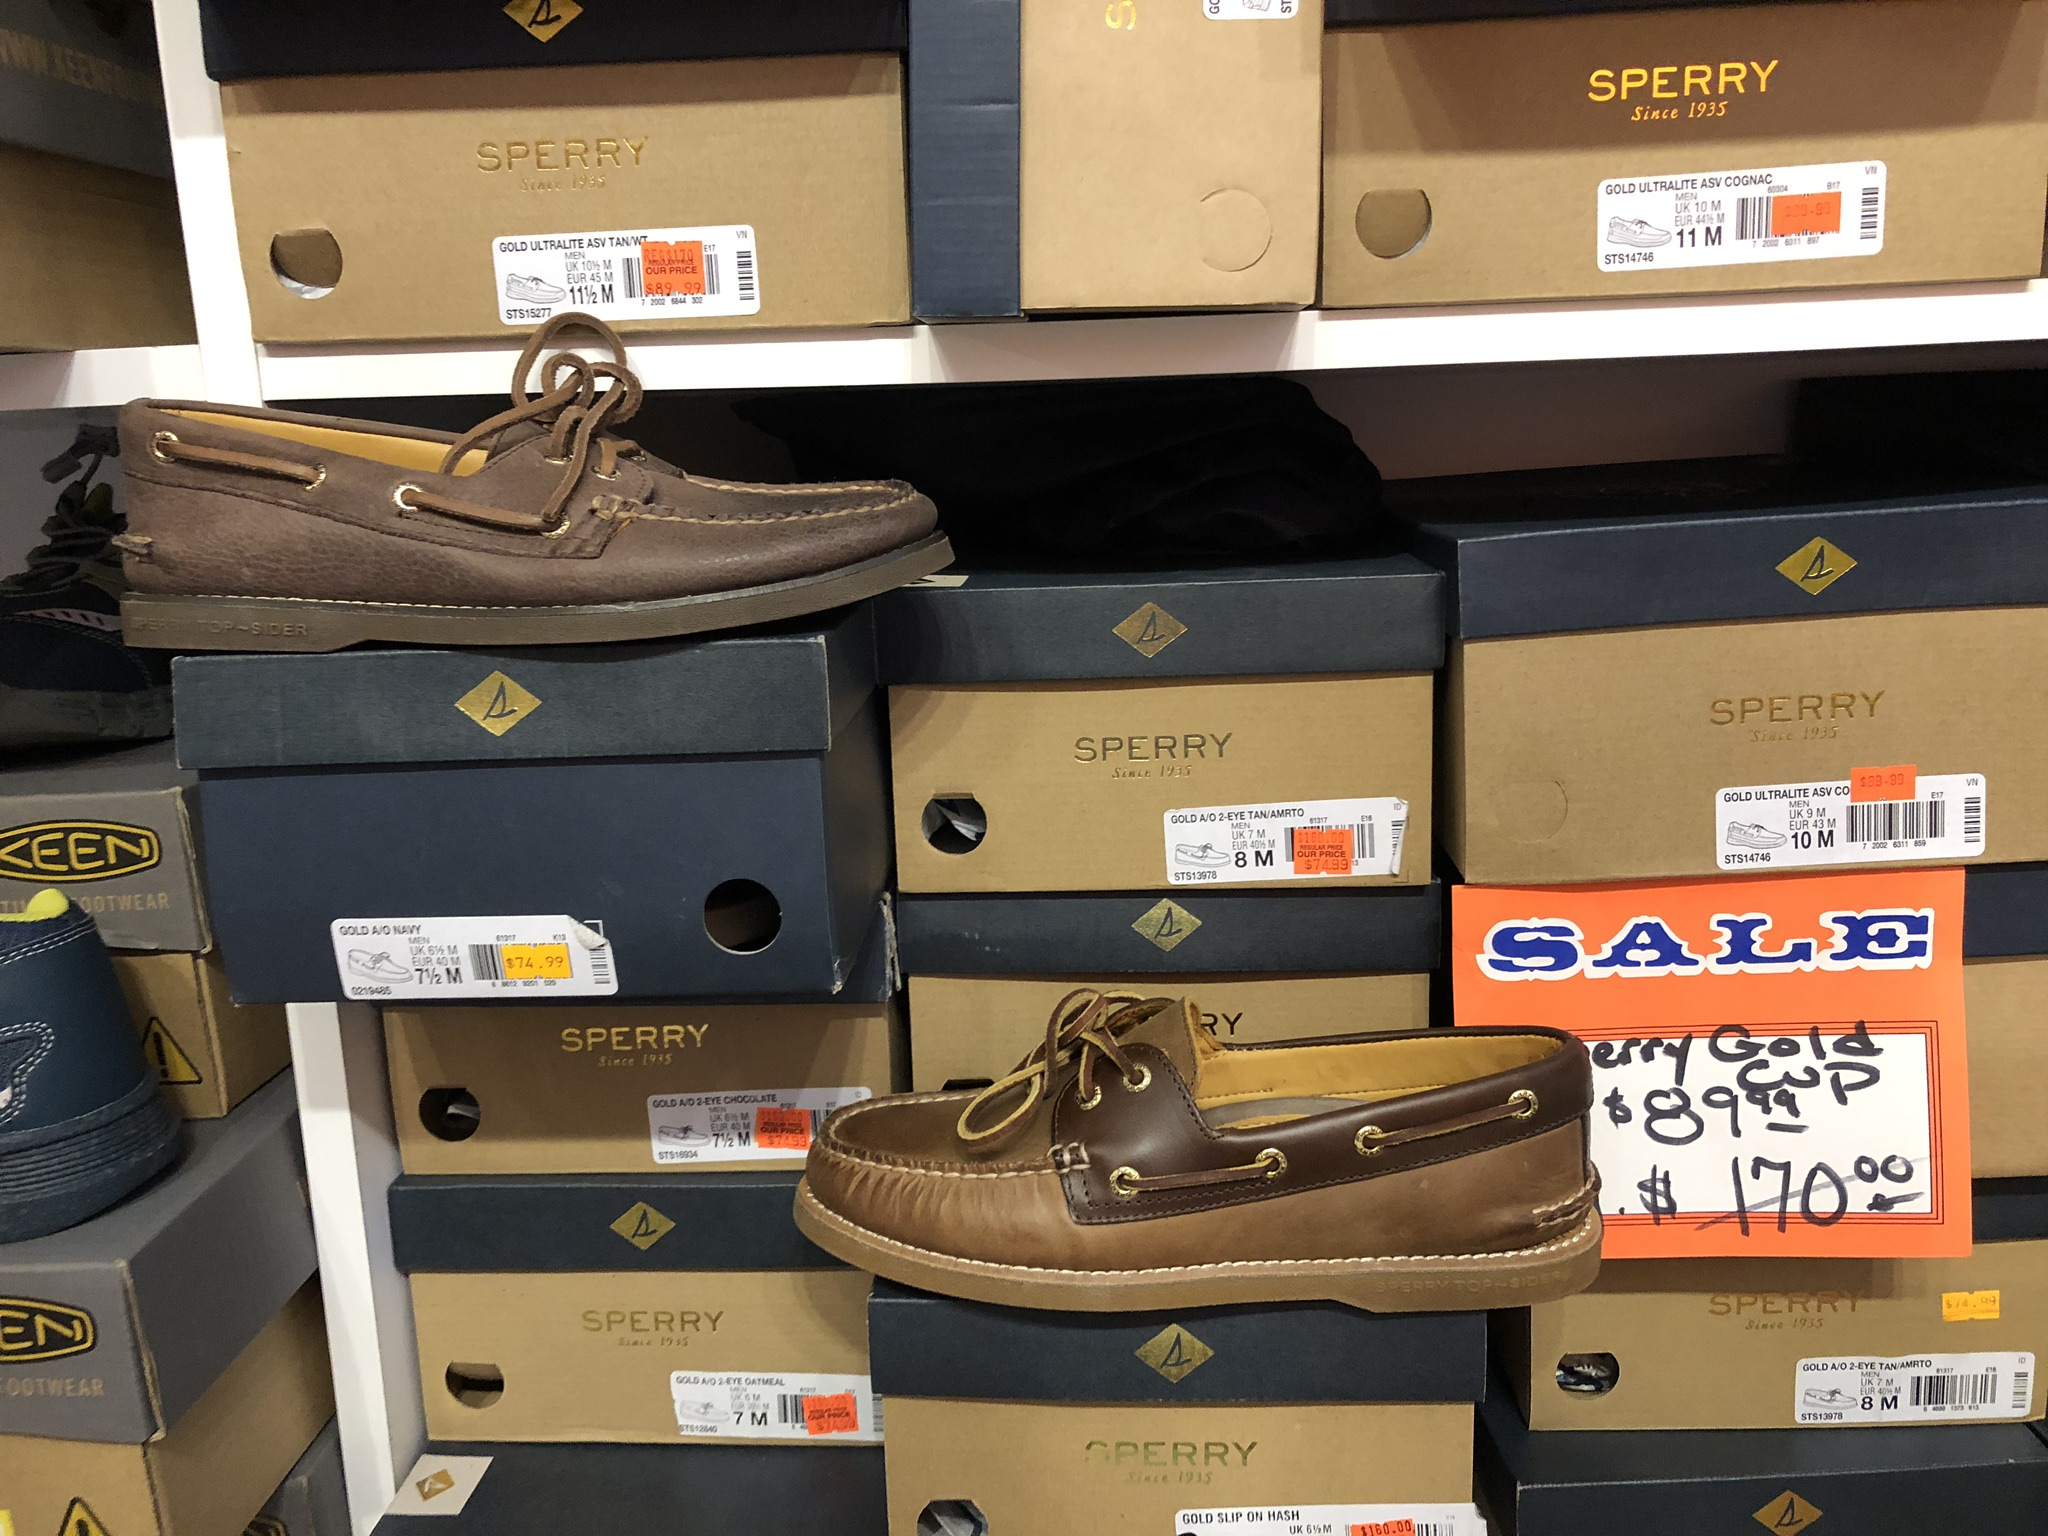 Sperry Gold Cup Men's Boat Shoes - Reg Price $170, Our Price $89.99